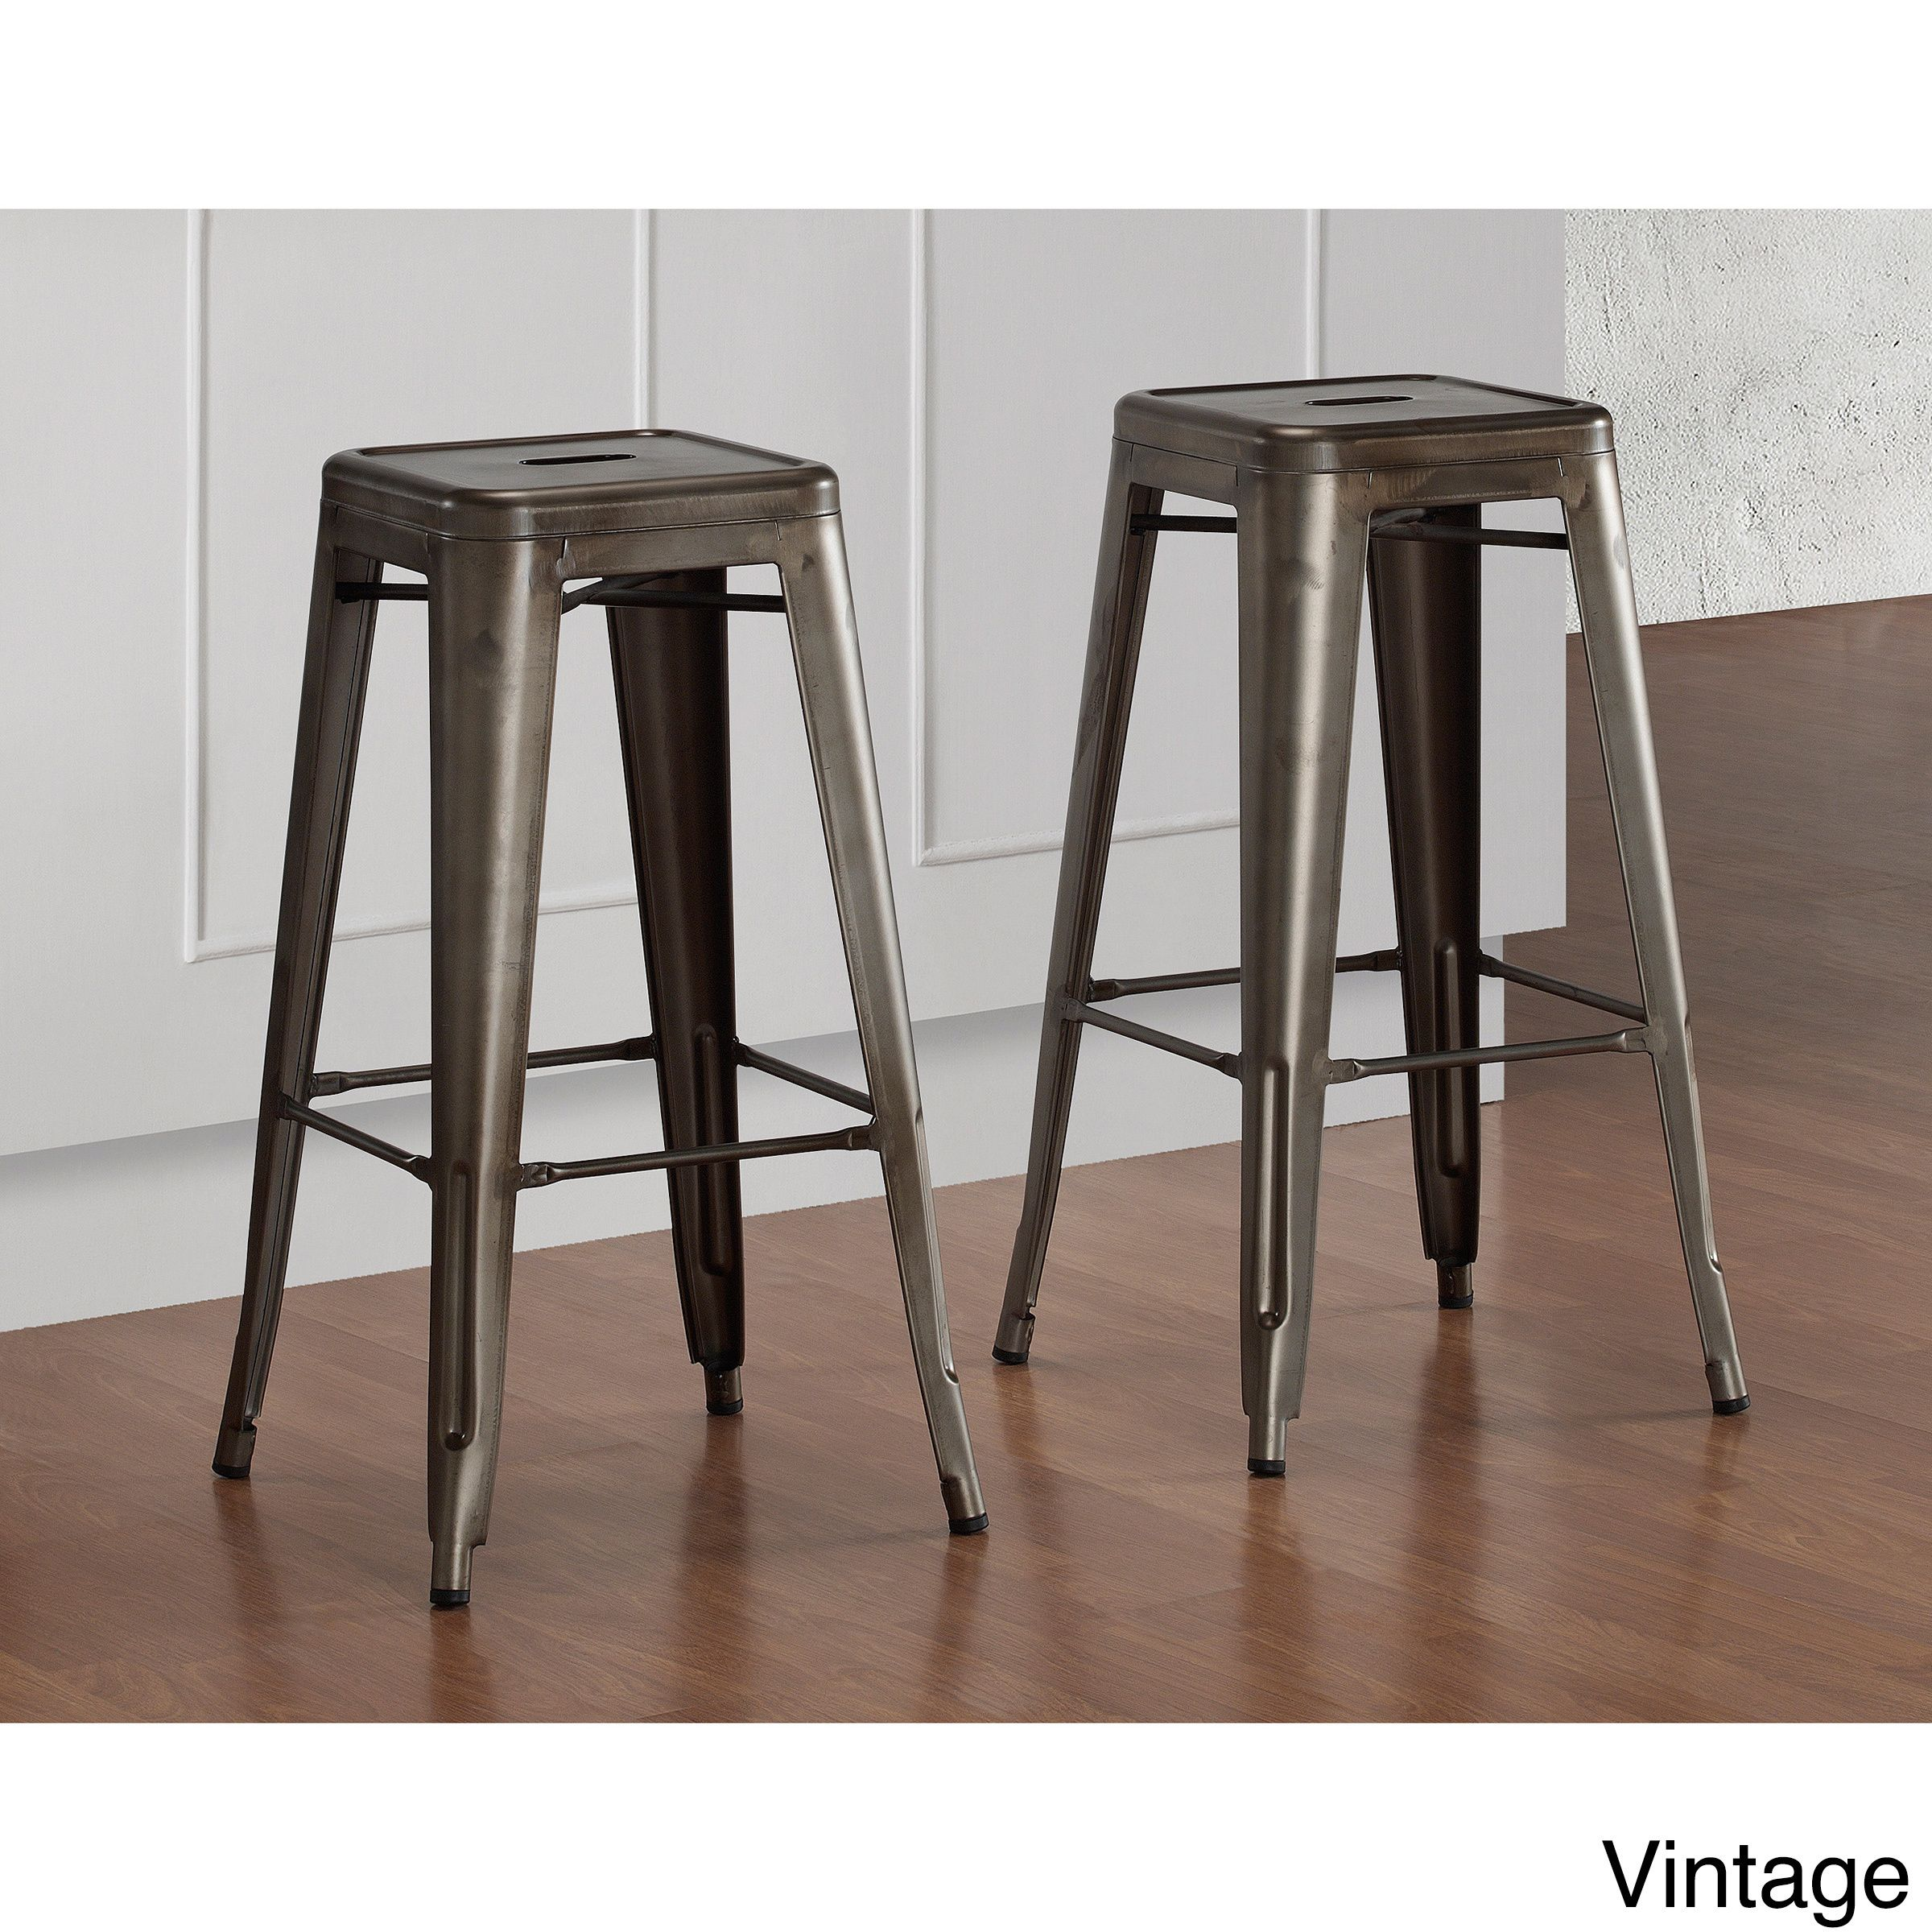 collection grcic konstantin miura moma stool works stools stackable